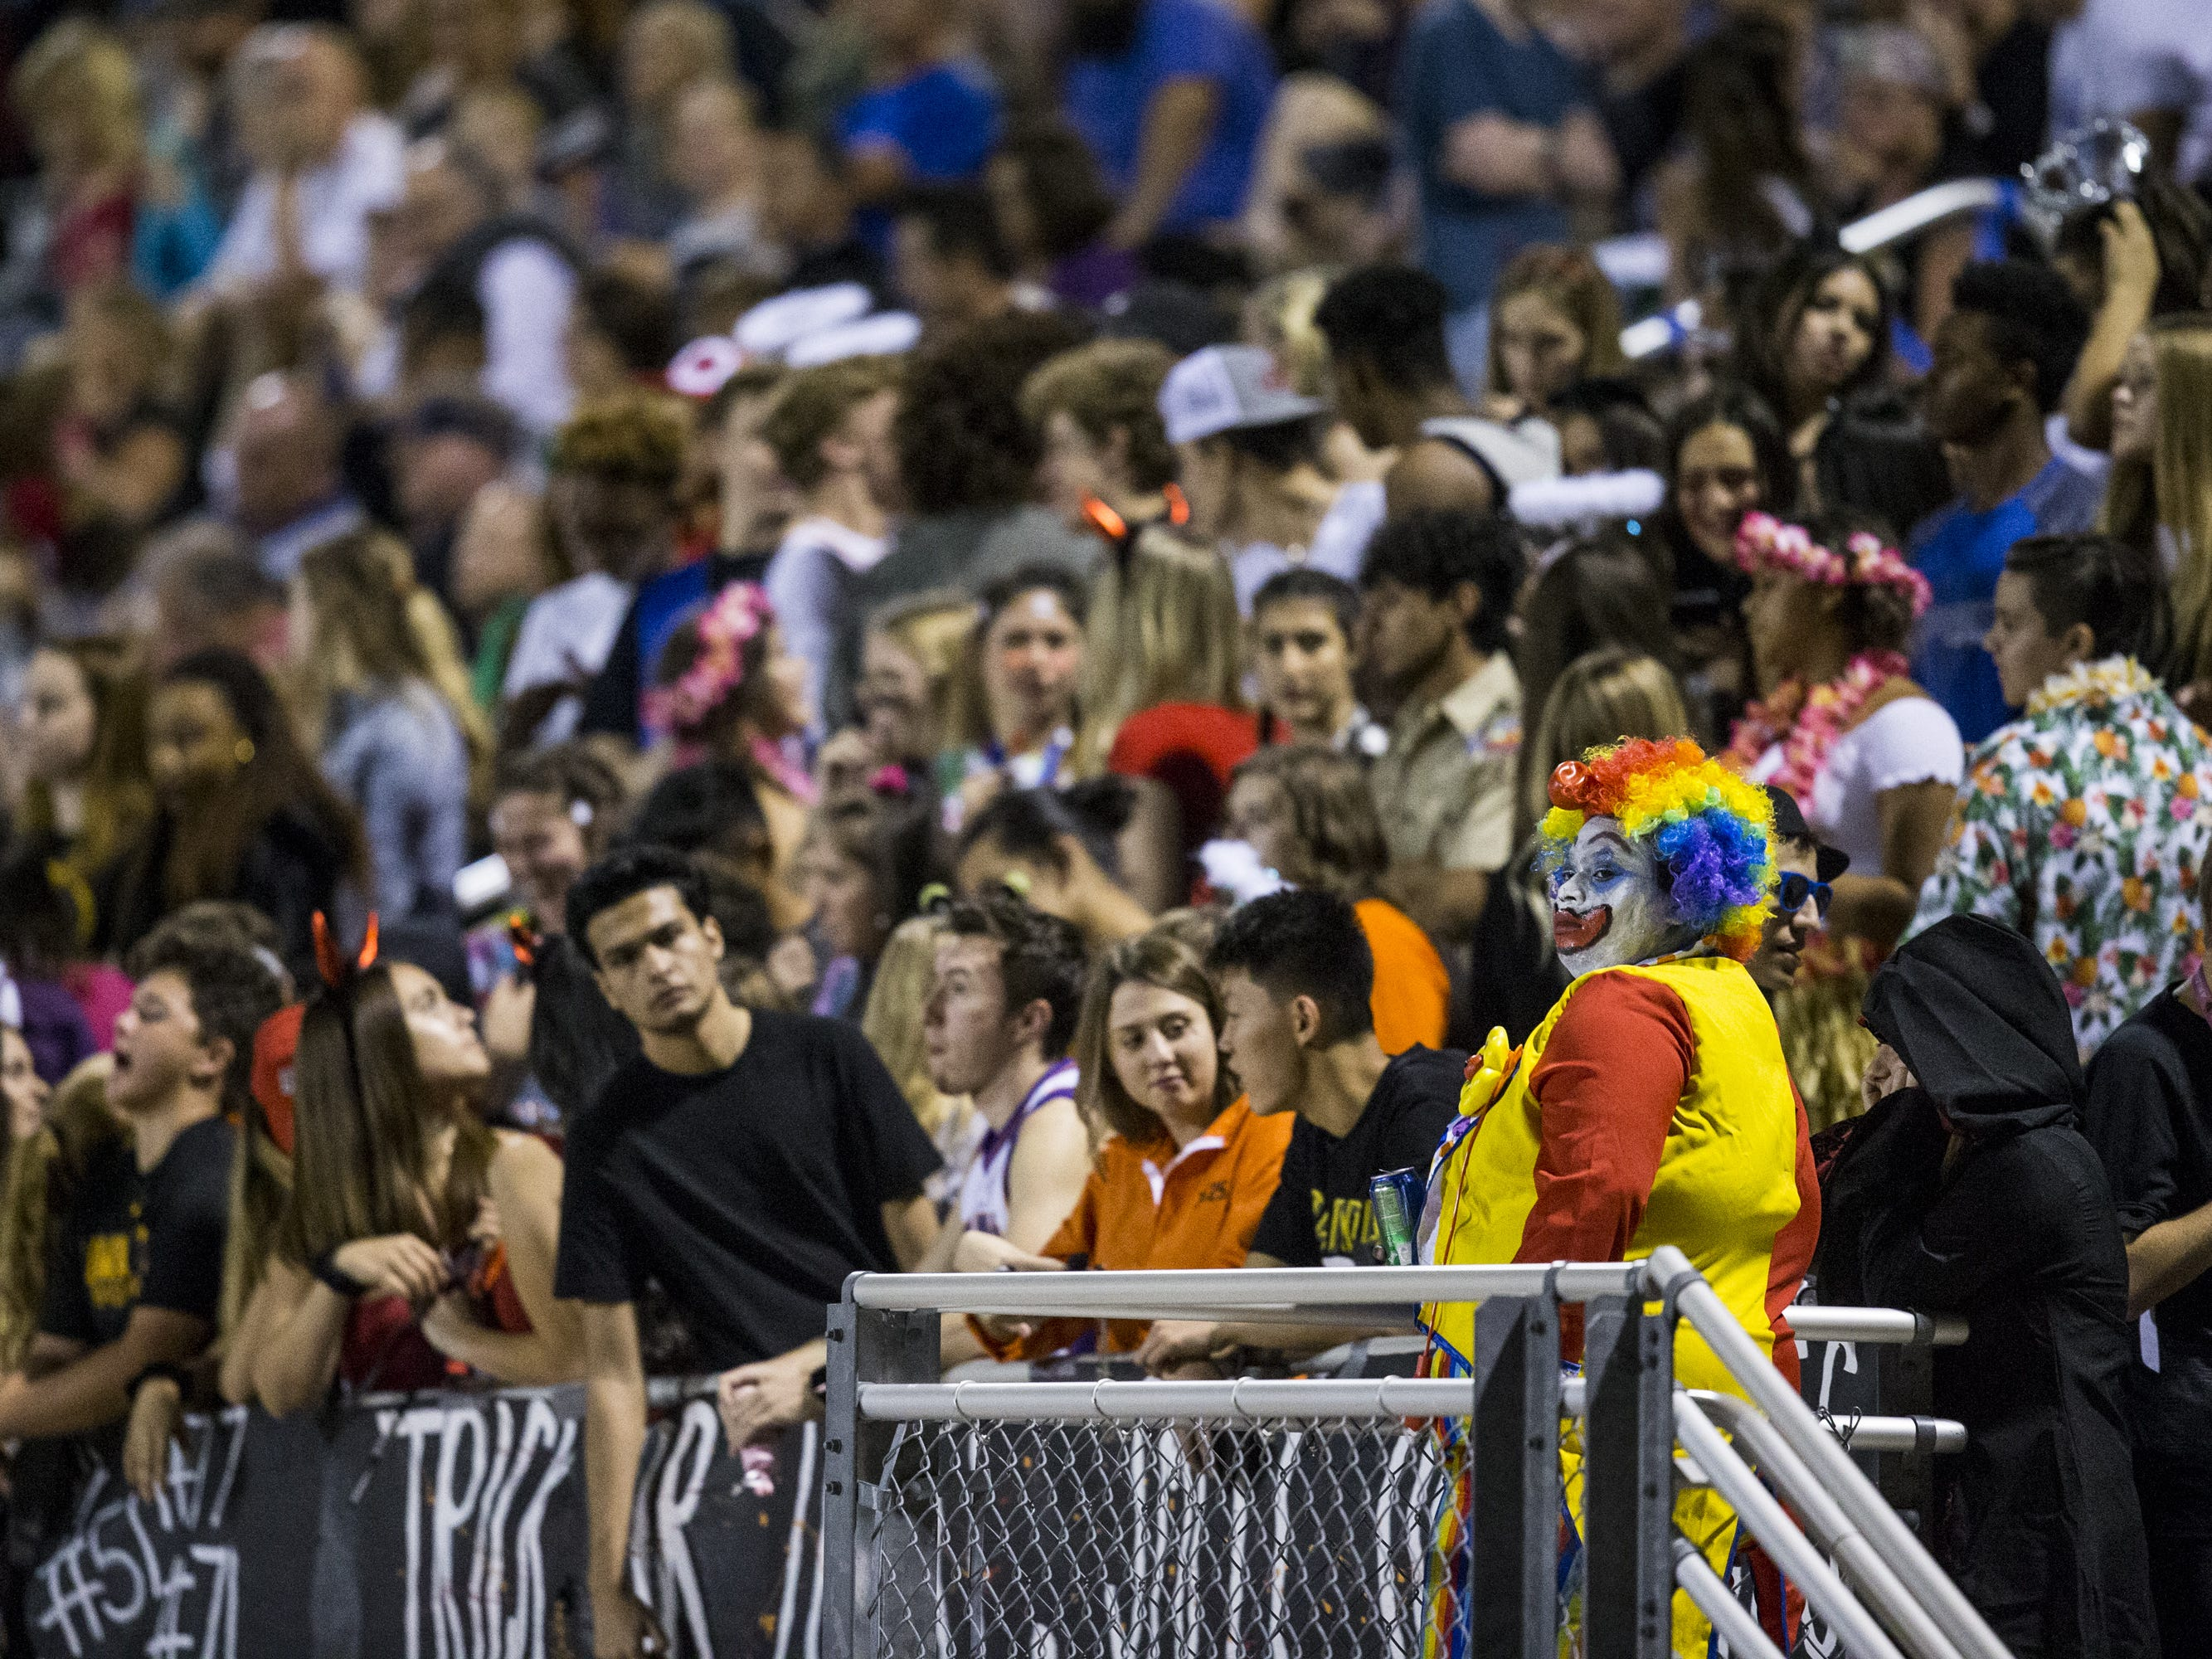 Mesquite fans watch the game against Saguaro in the first half on Friday, Oct. 26, 2018, at Mesquite High School in Gilbert, Ariz.  #azhsb